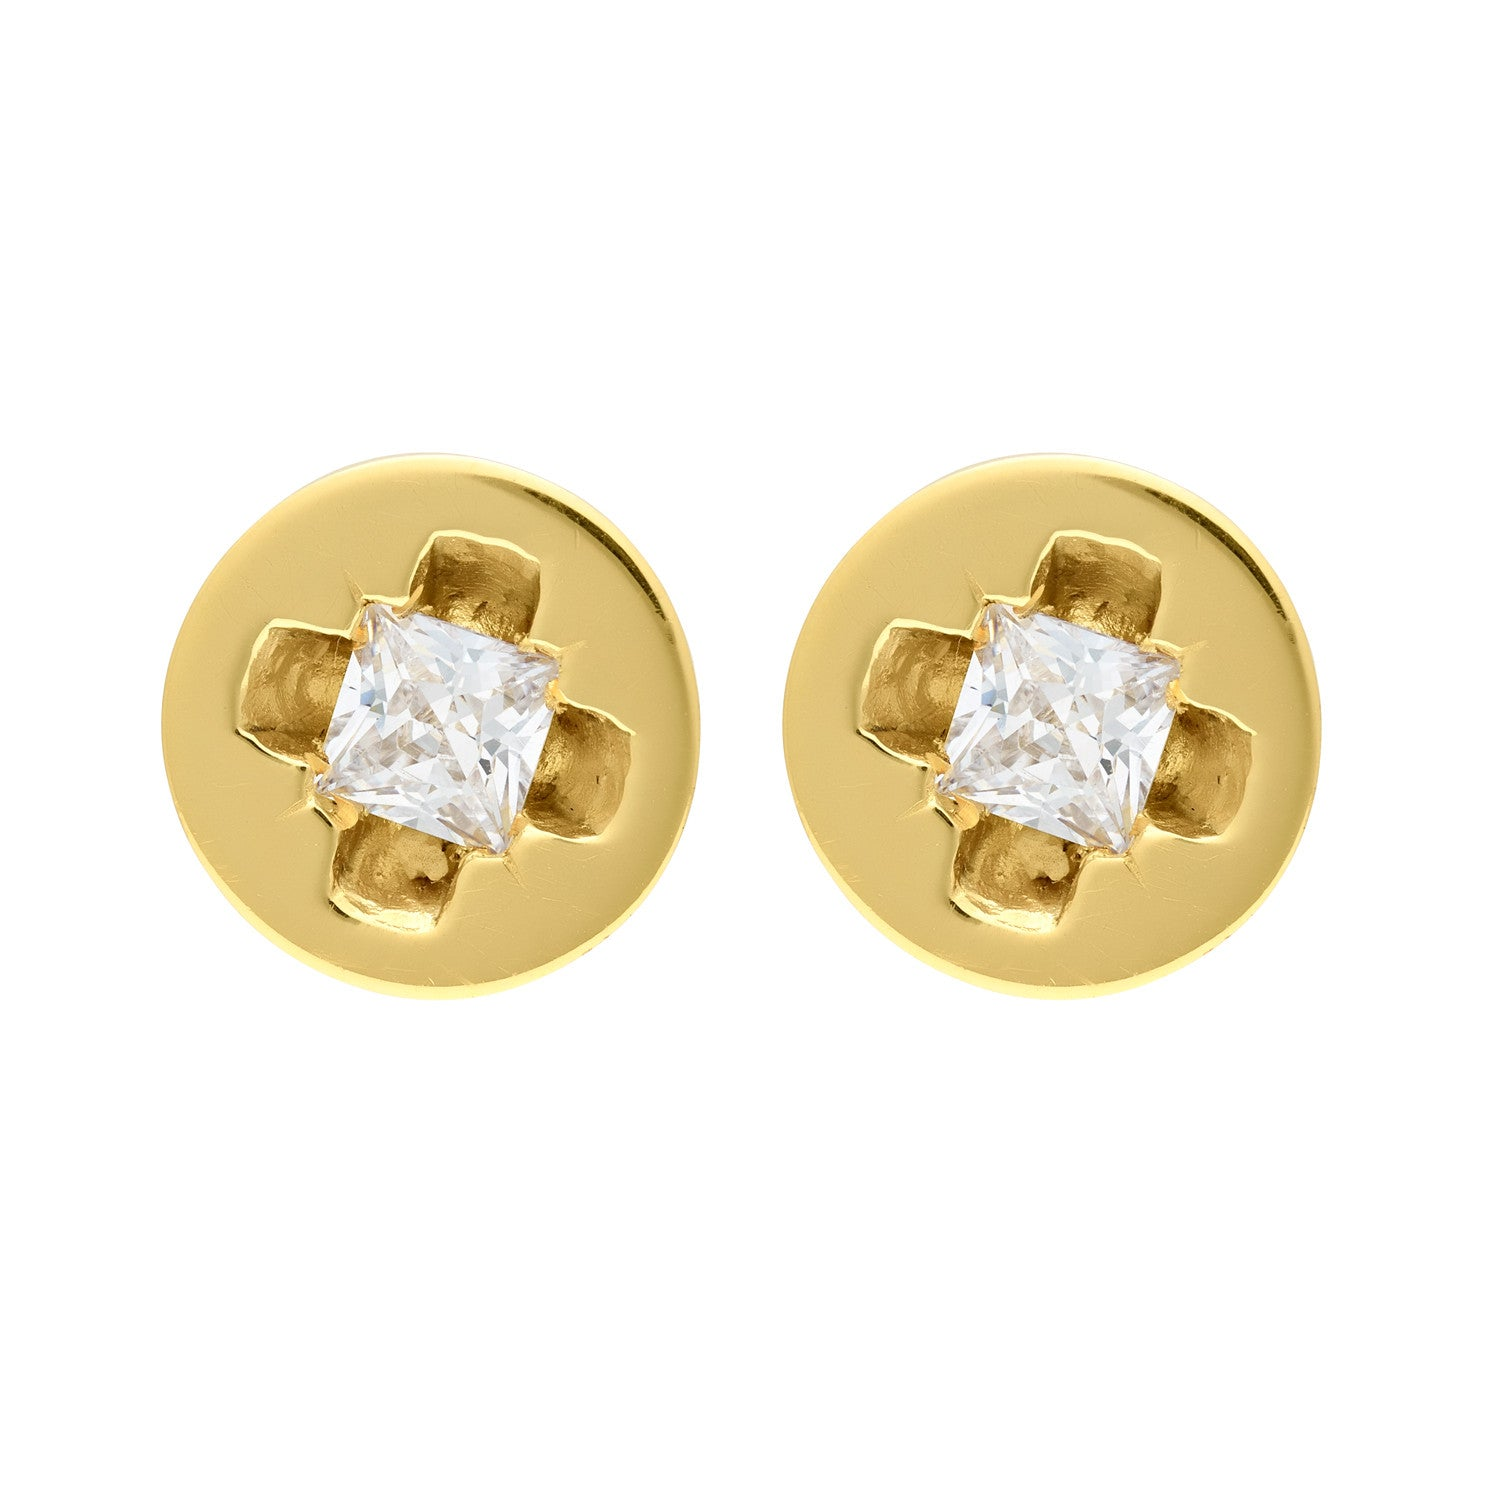 Coco\'s Liberty: Screw head earrings | Jewelry -  Hiphunters Shop